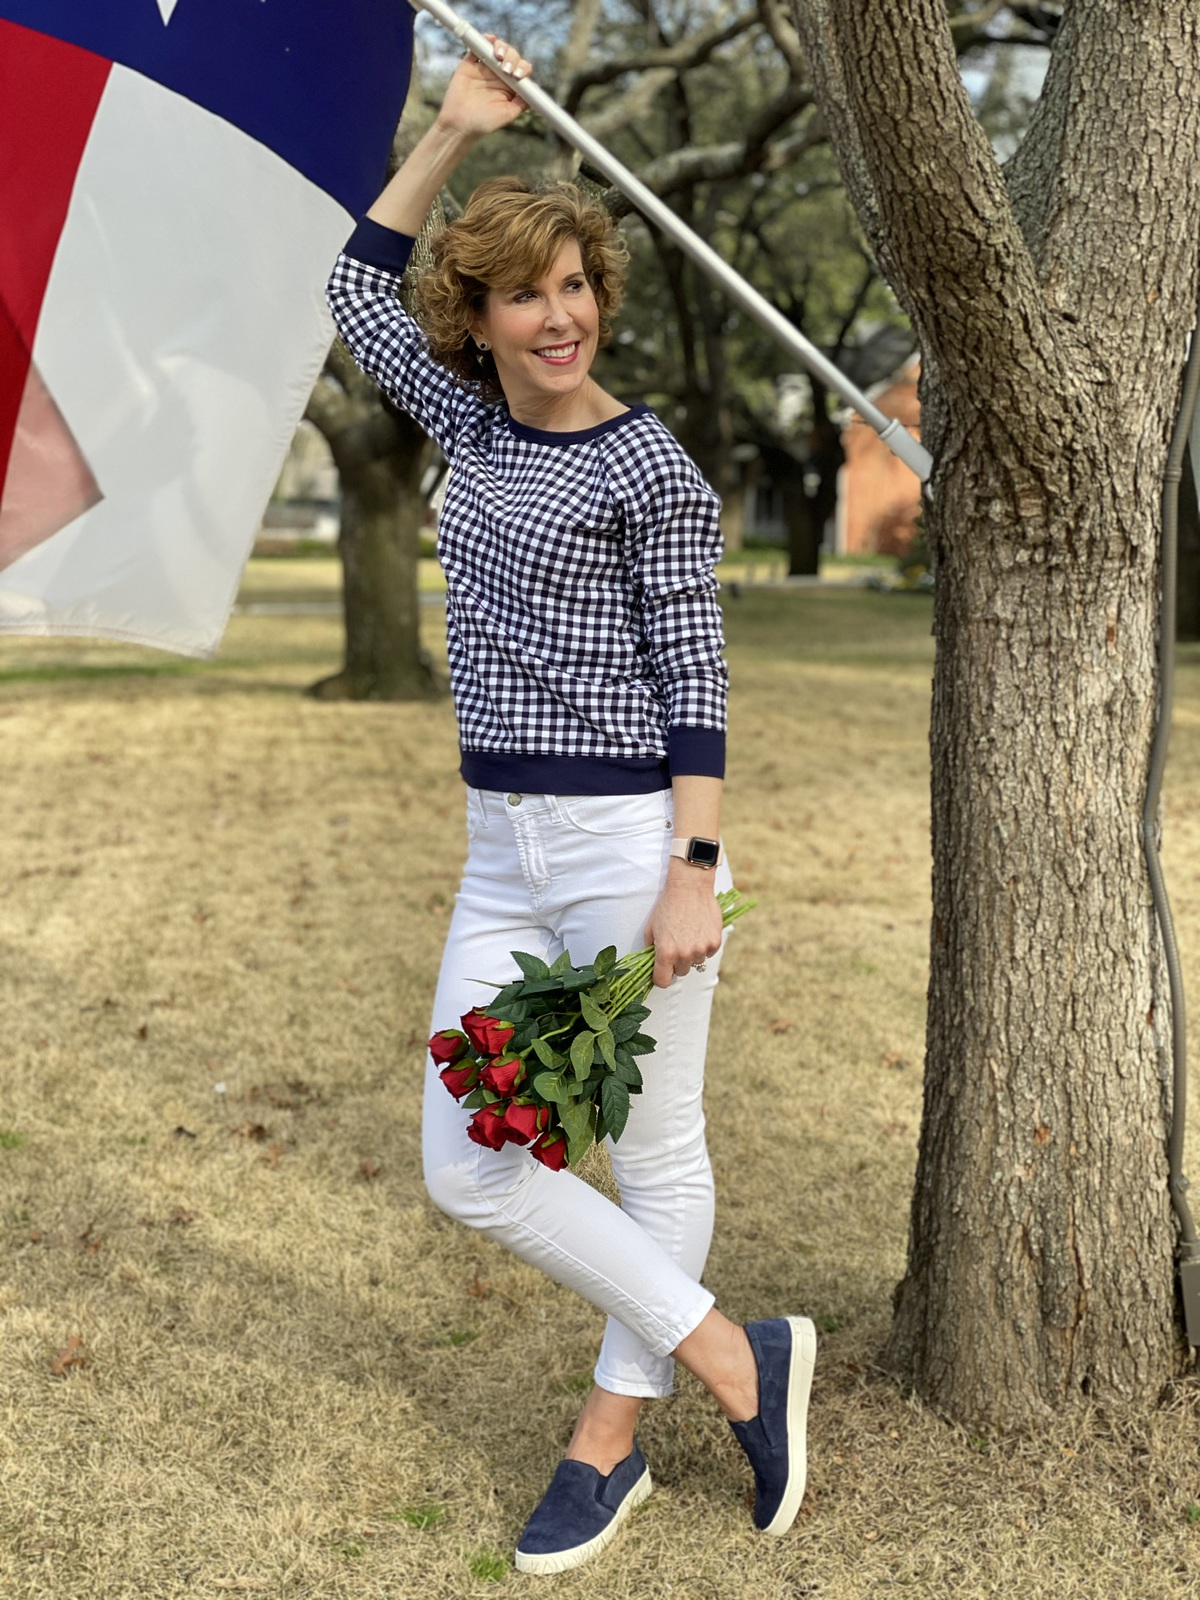 woman over 50 wearing navy and white gingham sweatshirt and white jeans standing by a texas flag and holding red roses